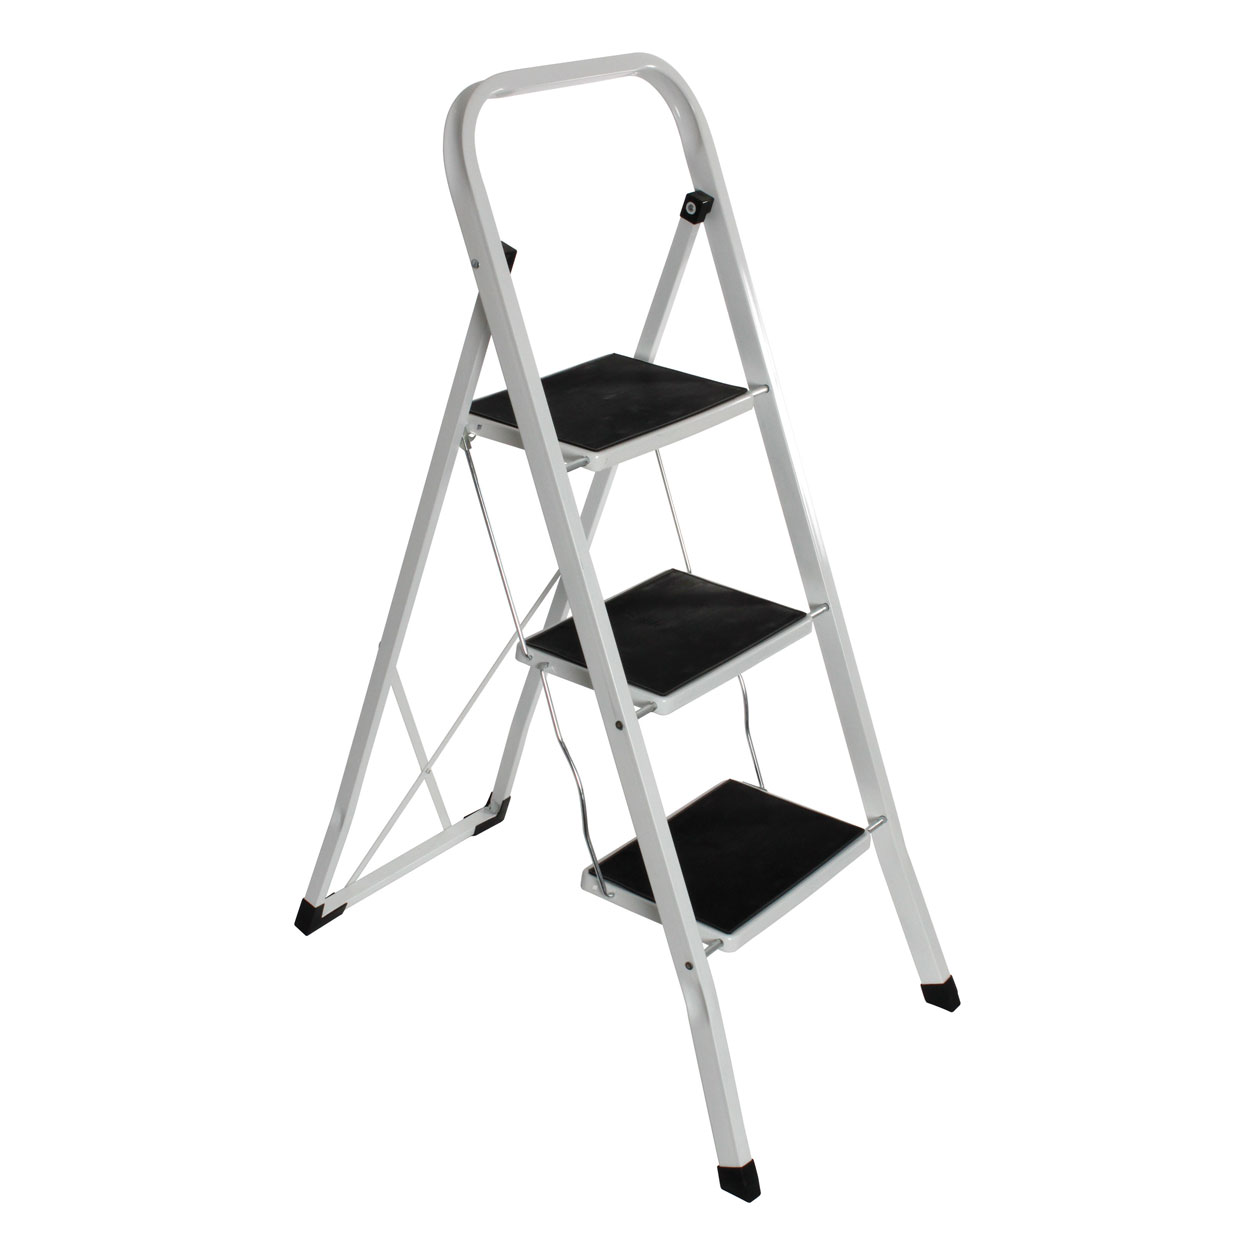 Coopers Of Stortford 3 Step Ladder From Coopers Of Stortford